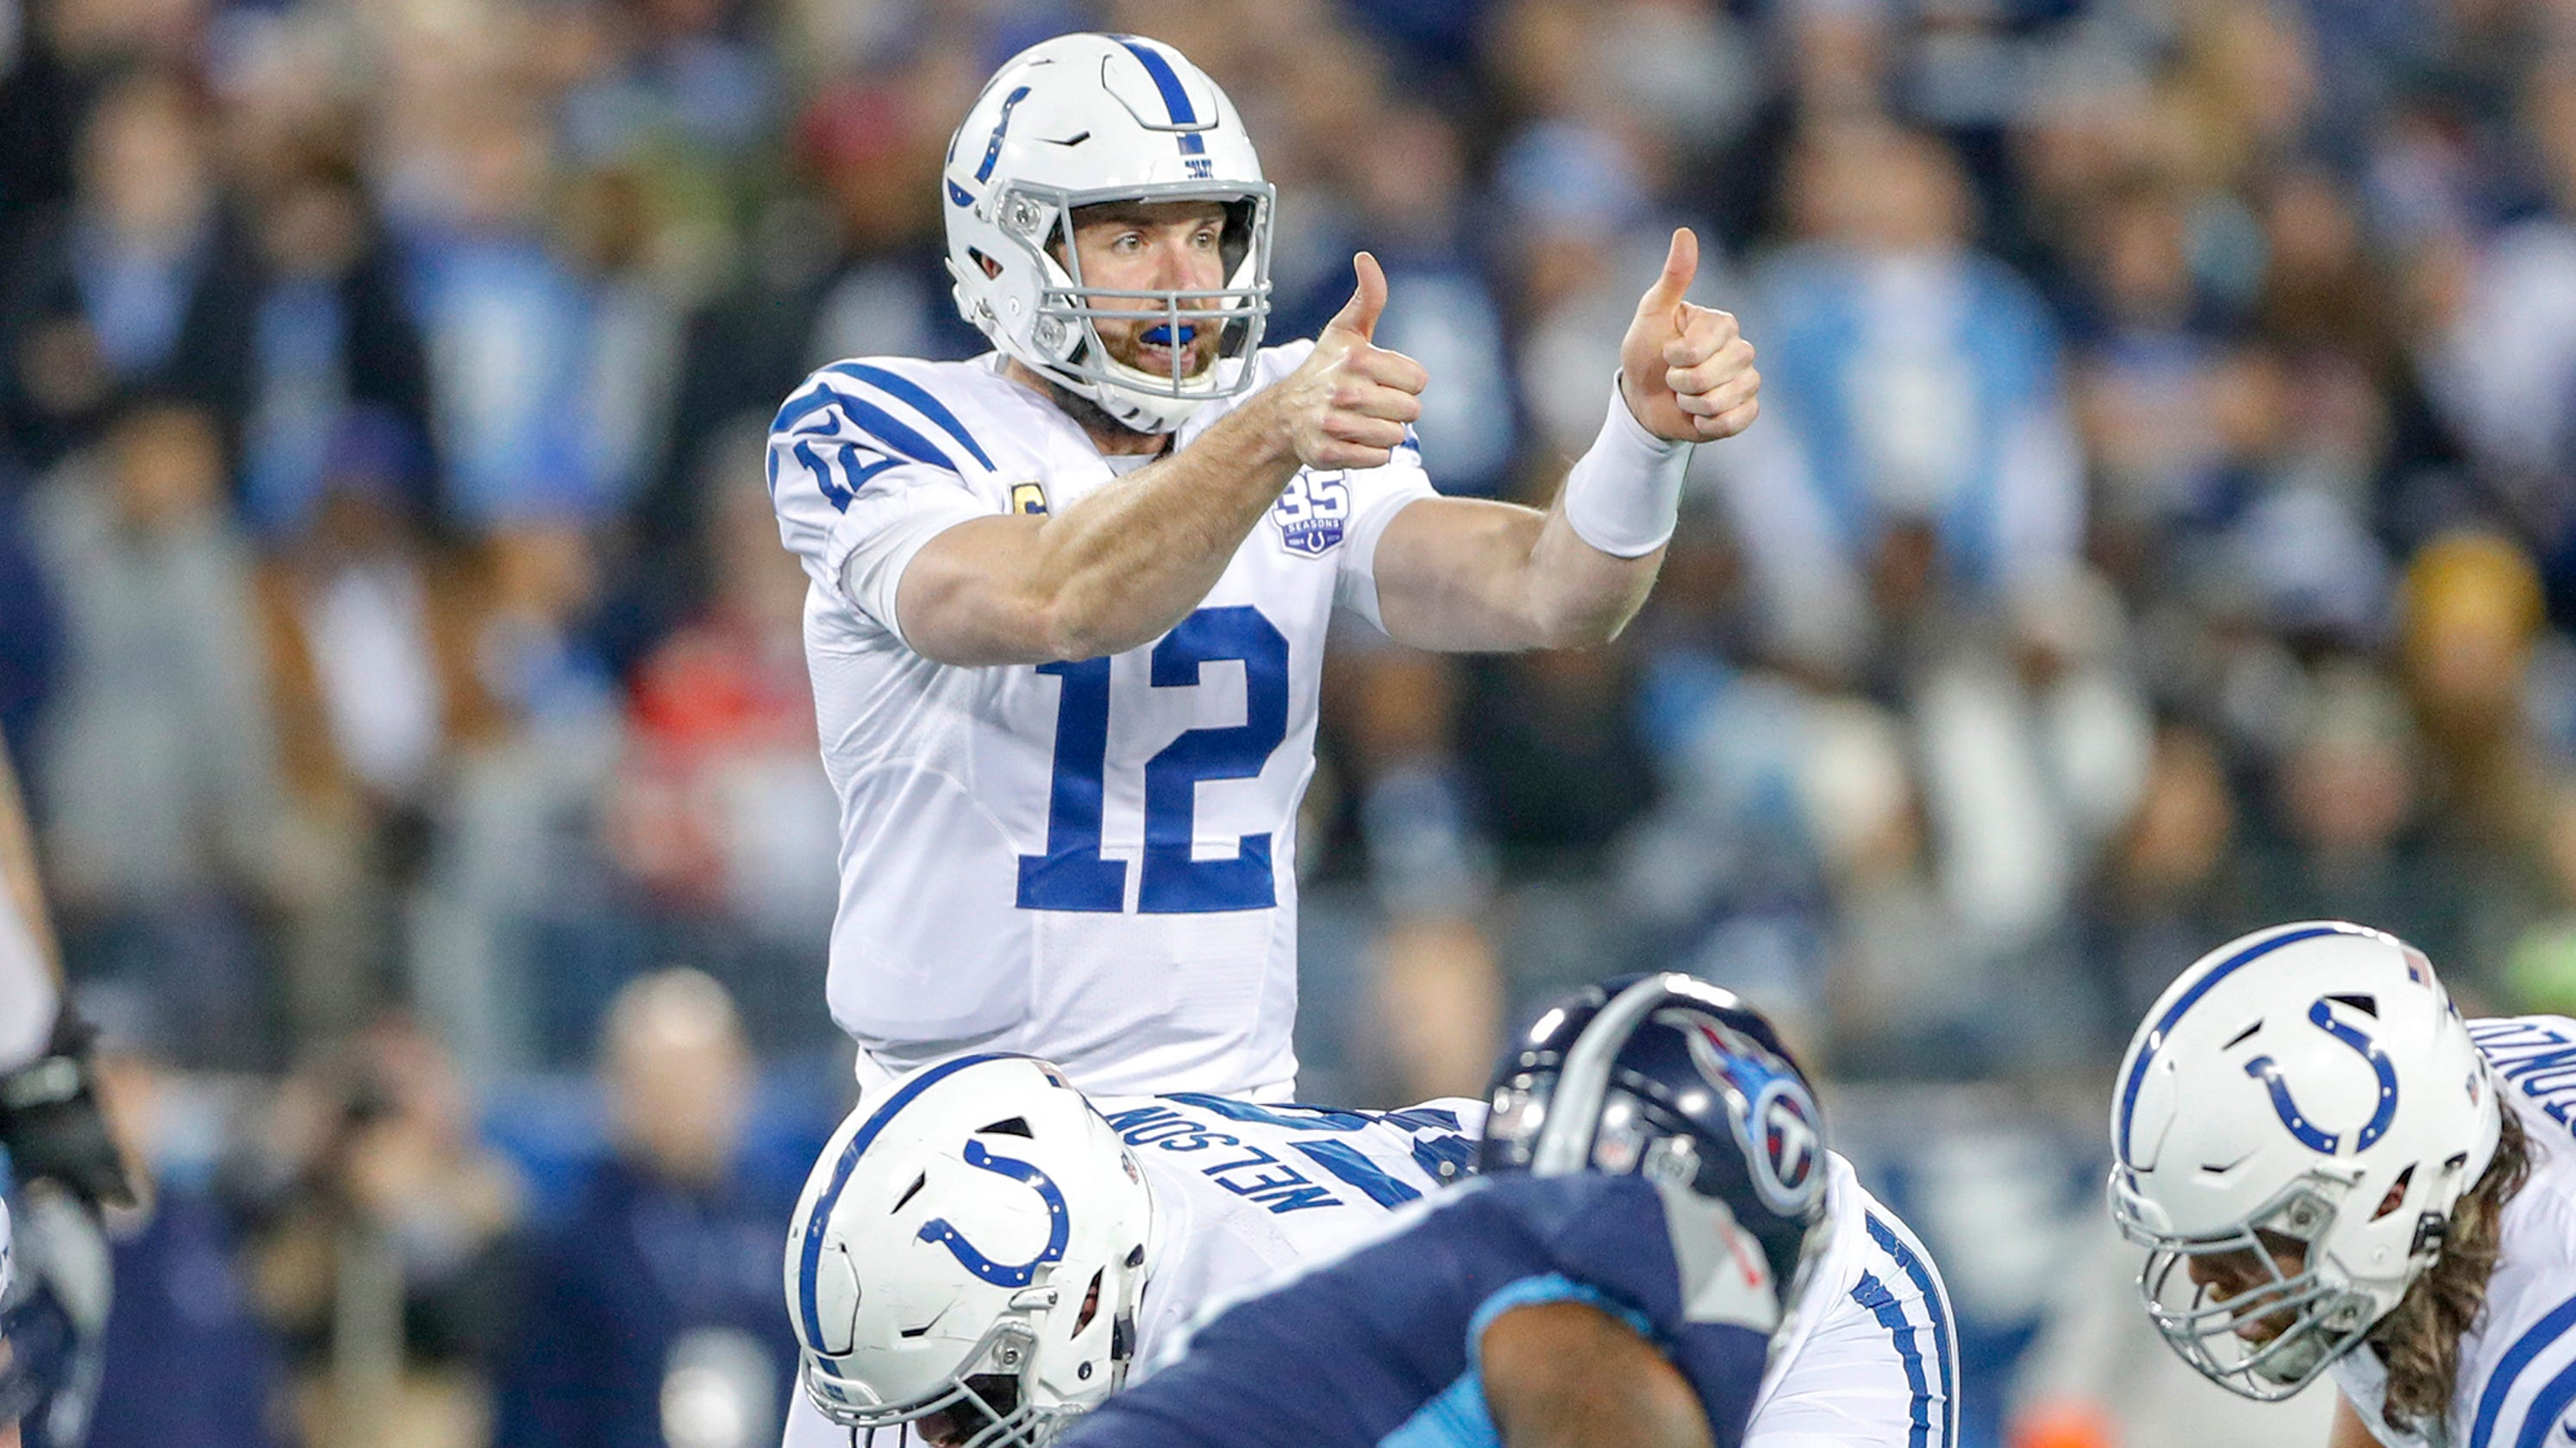 a85fabb2f Indianapolis Colts go from 1-5 to NFL playoffs after beating Titans